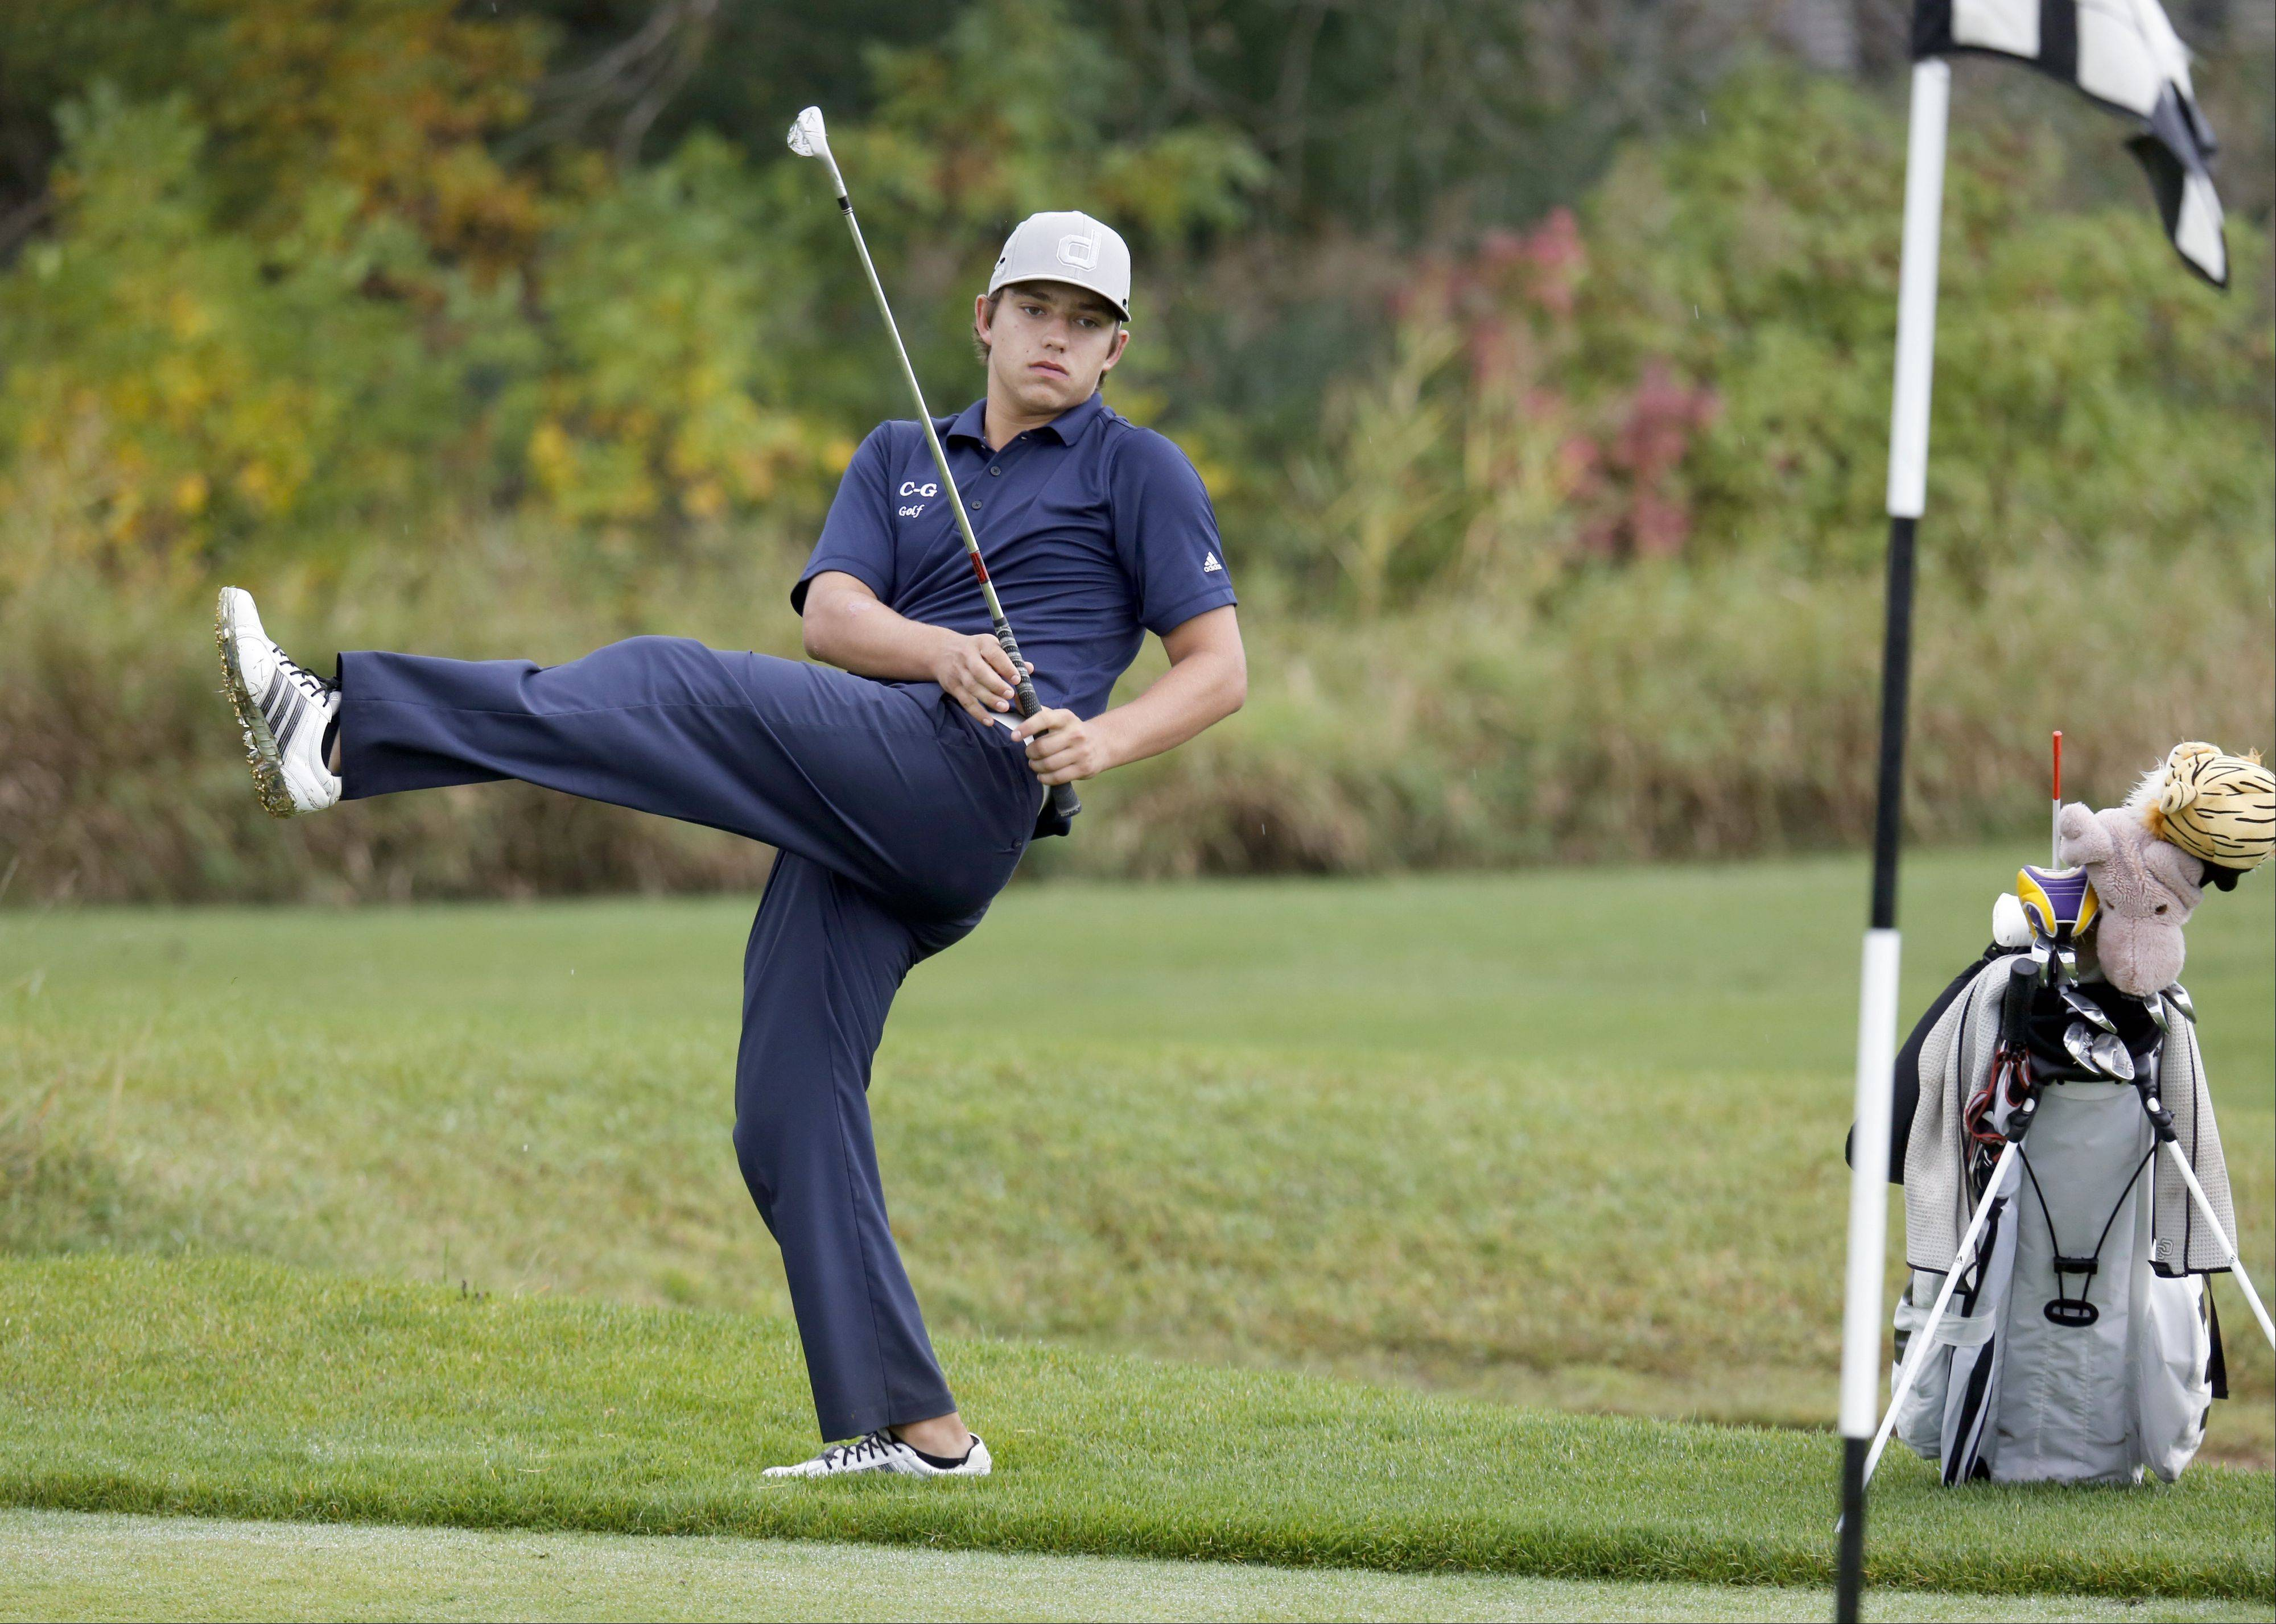 Cary Grove's Daniel DePrey reacts to his chip on the 5th green during the Fox Valley Conference boys golf tournament at the Golf Club of Illinois Thursday in Algonquin.